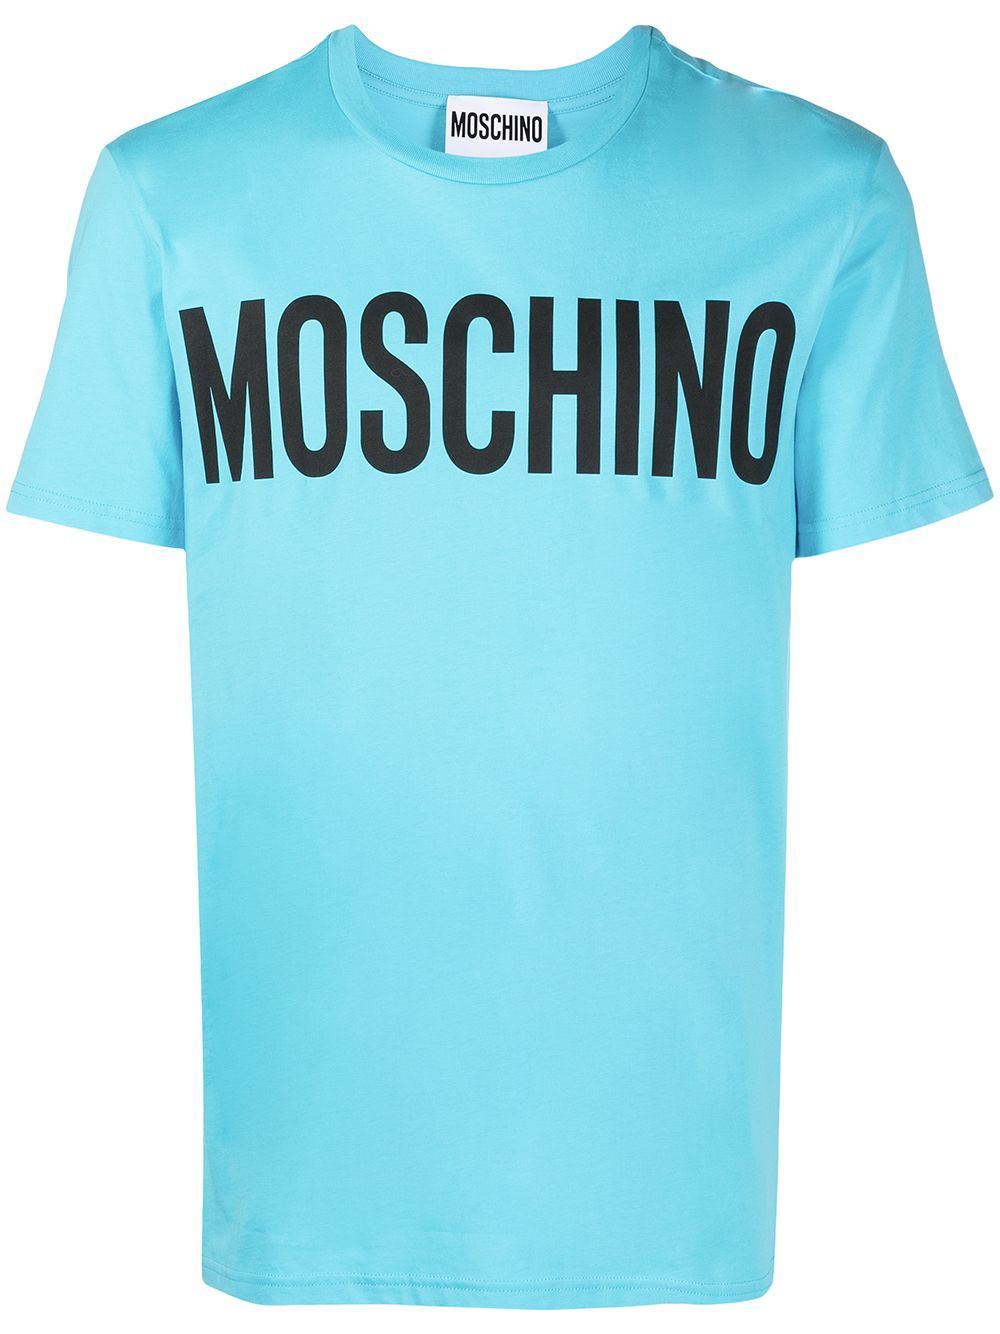 Moschino Cottons MOSCHINO MEN'S LIGHT BLUE COTTON T-SHIRT